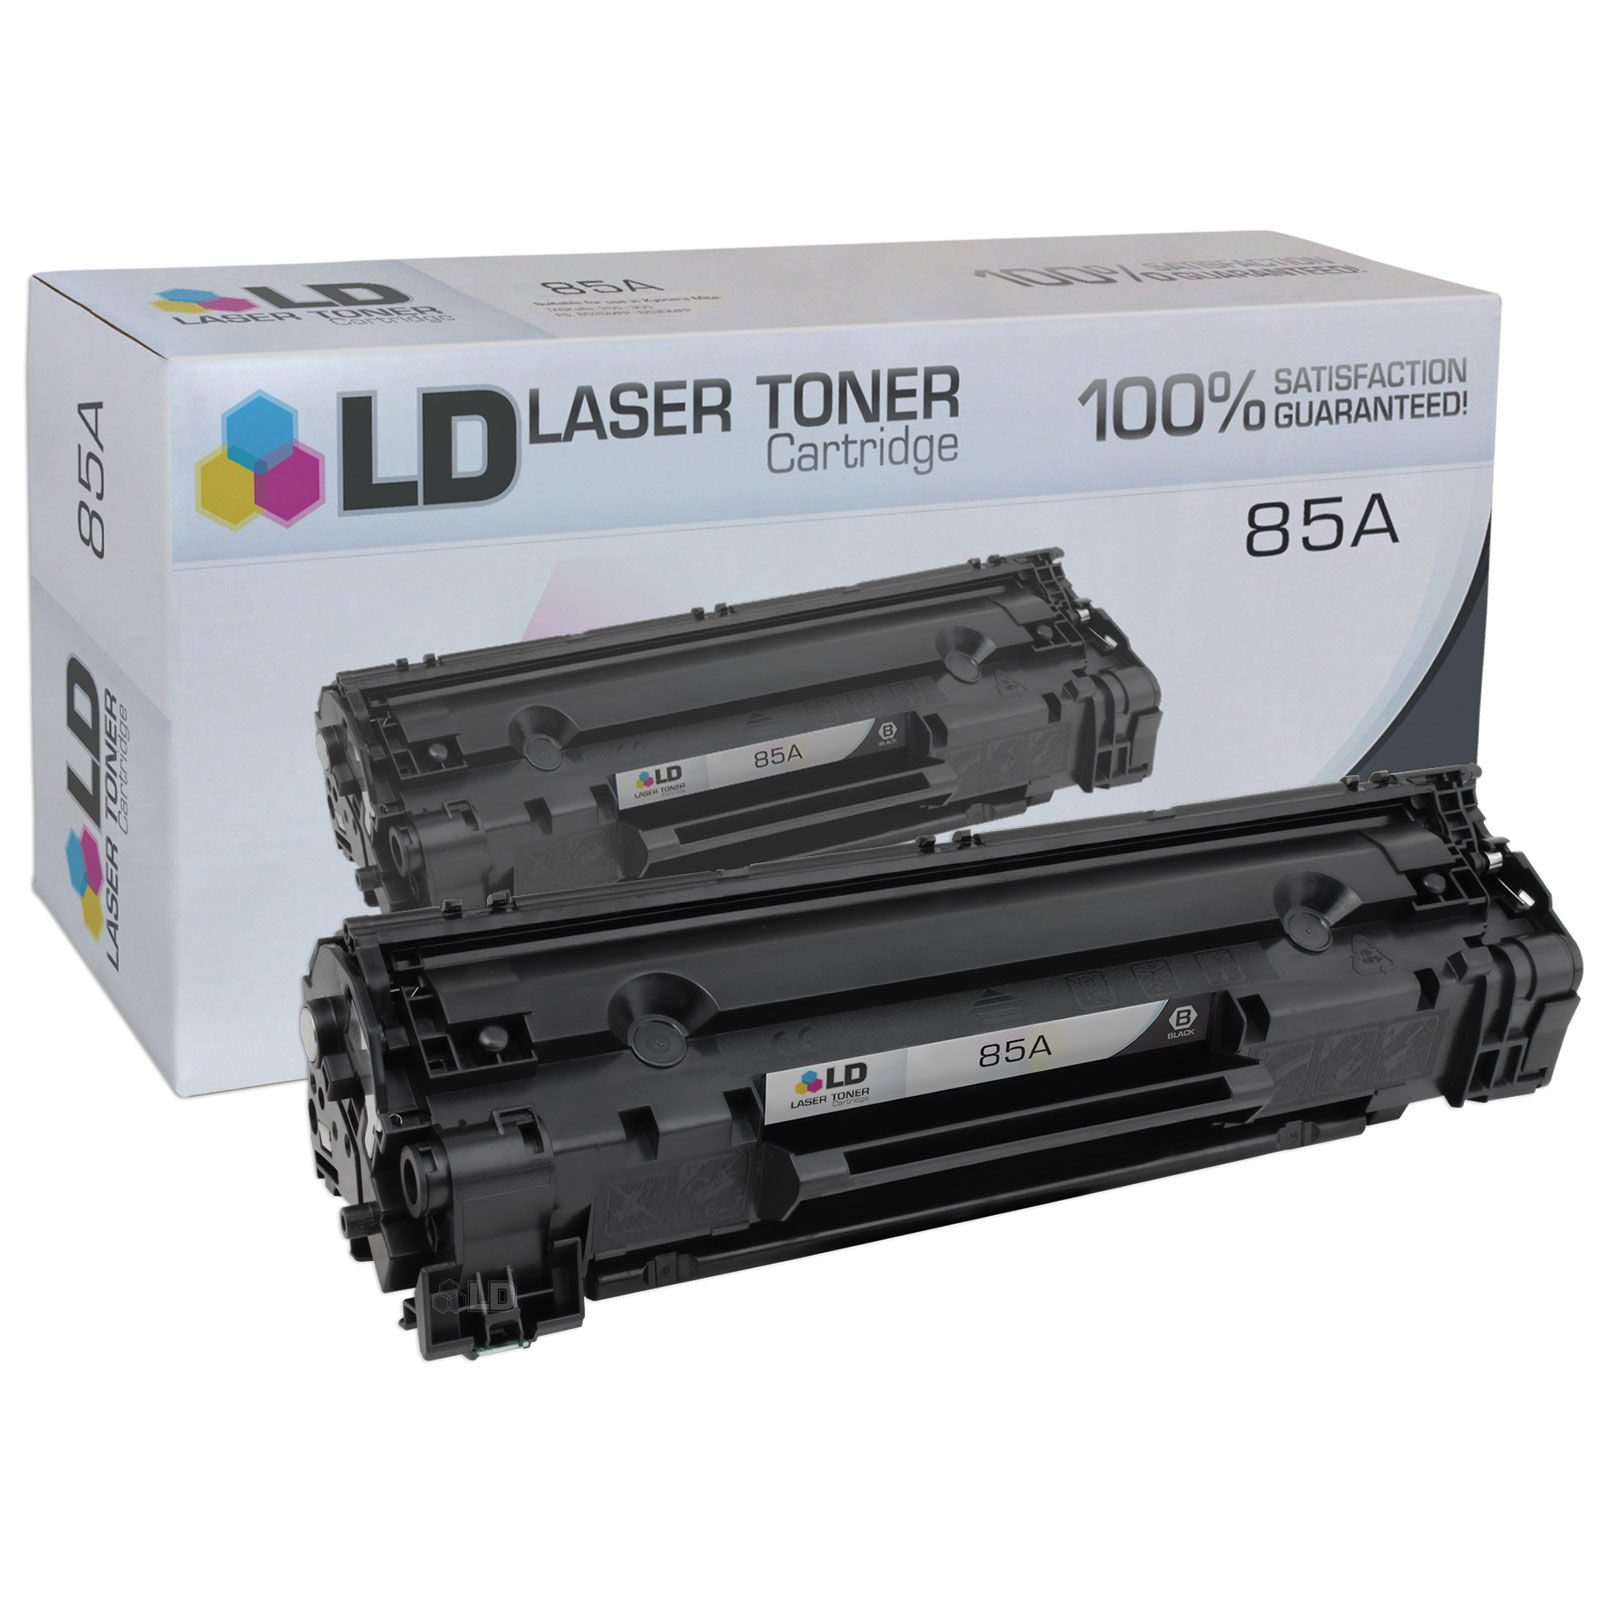 LD Compatible Replacement for Hewlett Packard CE285A (HP 85A) Black Laser Toner Cartridge for use in HP LaserJet Pro